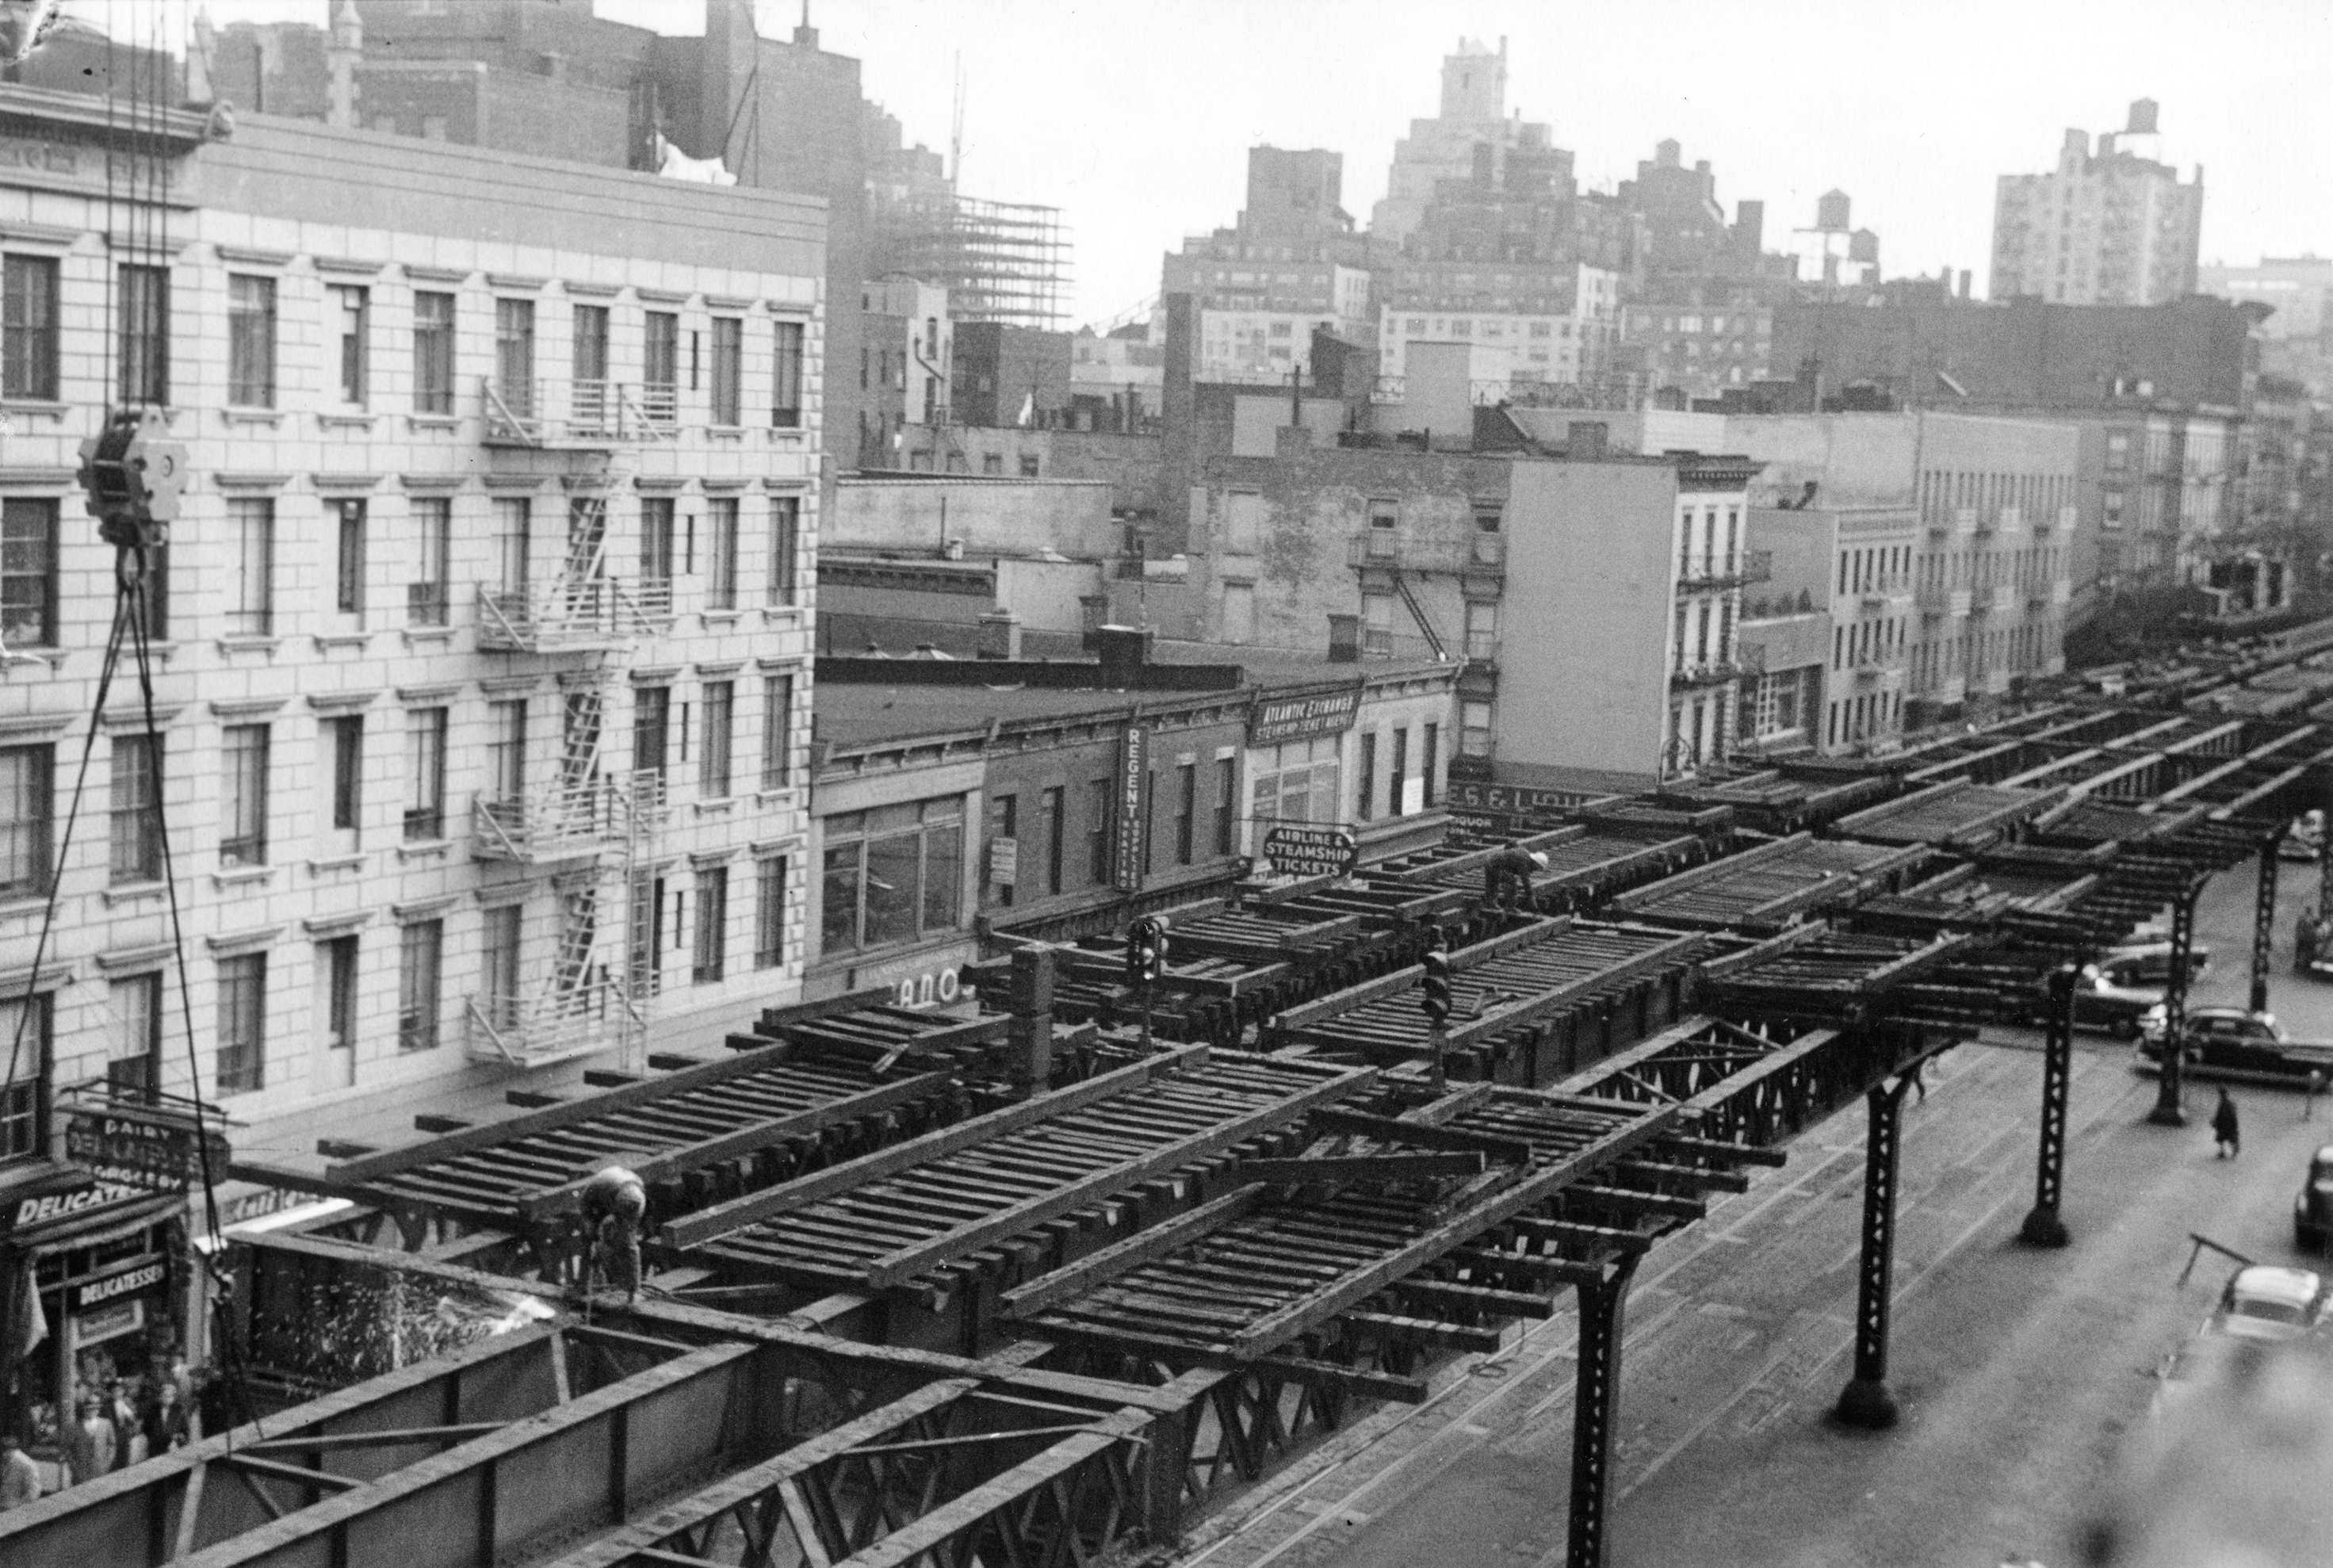 The Third Avenue Elevated tracks.